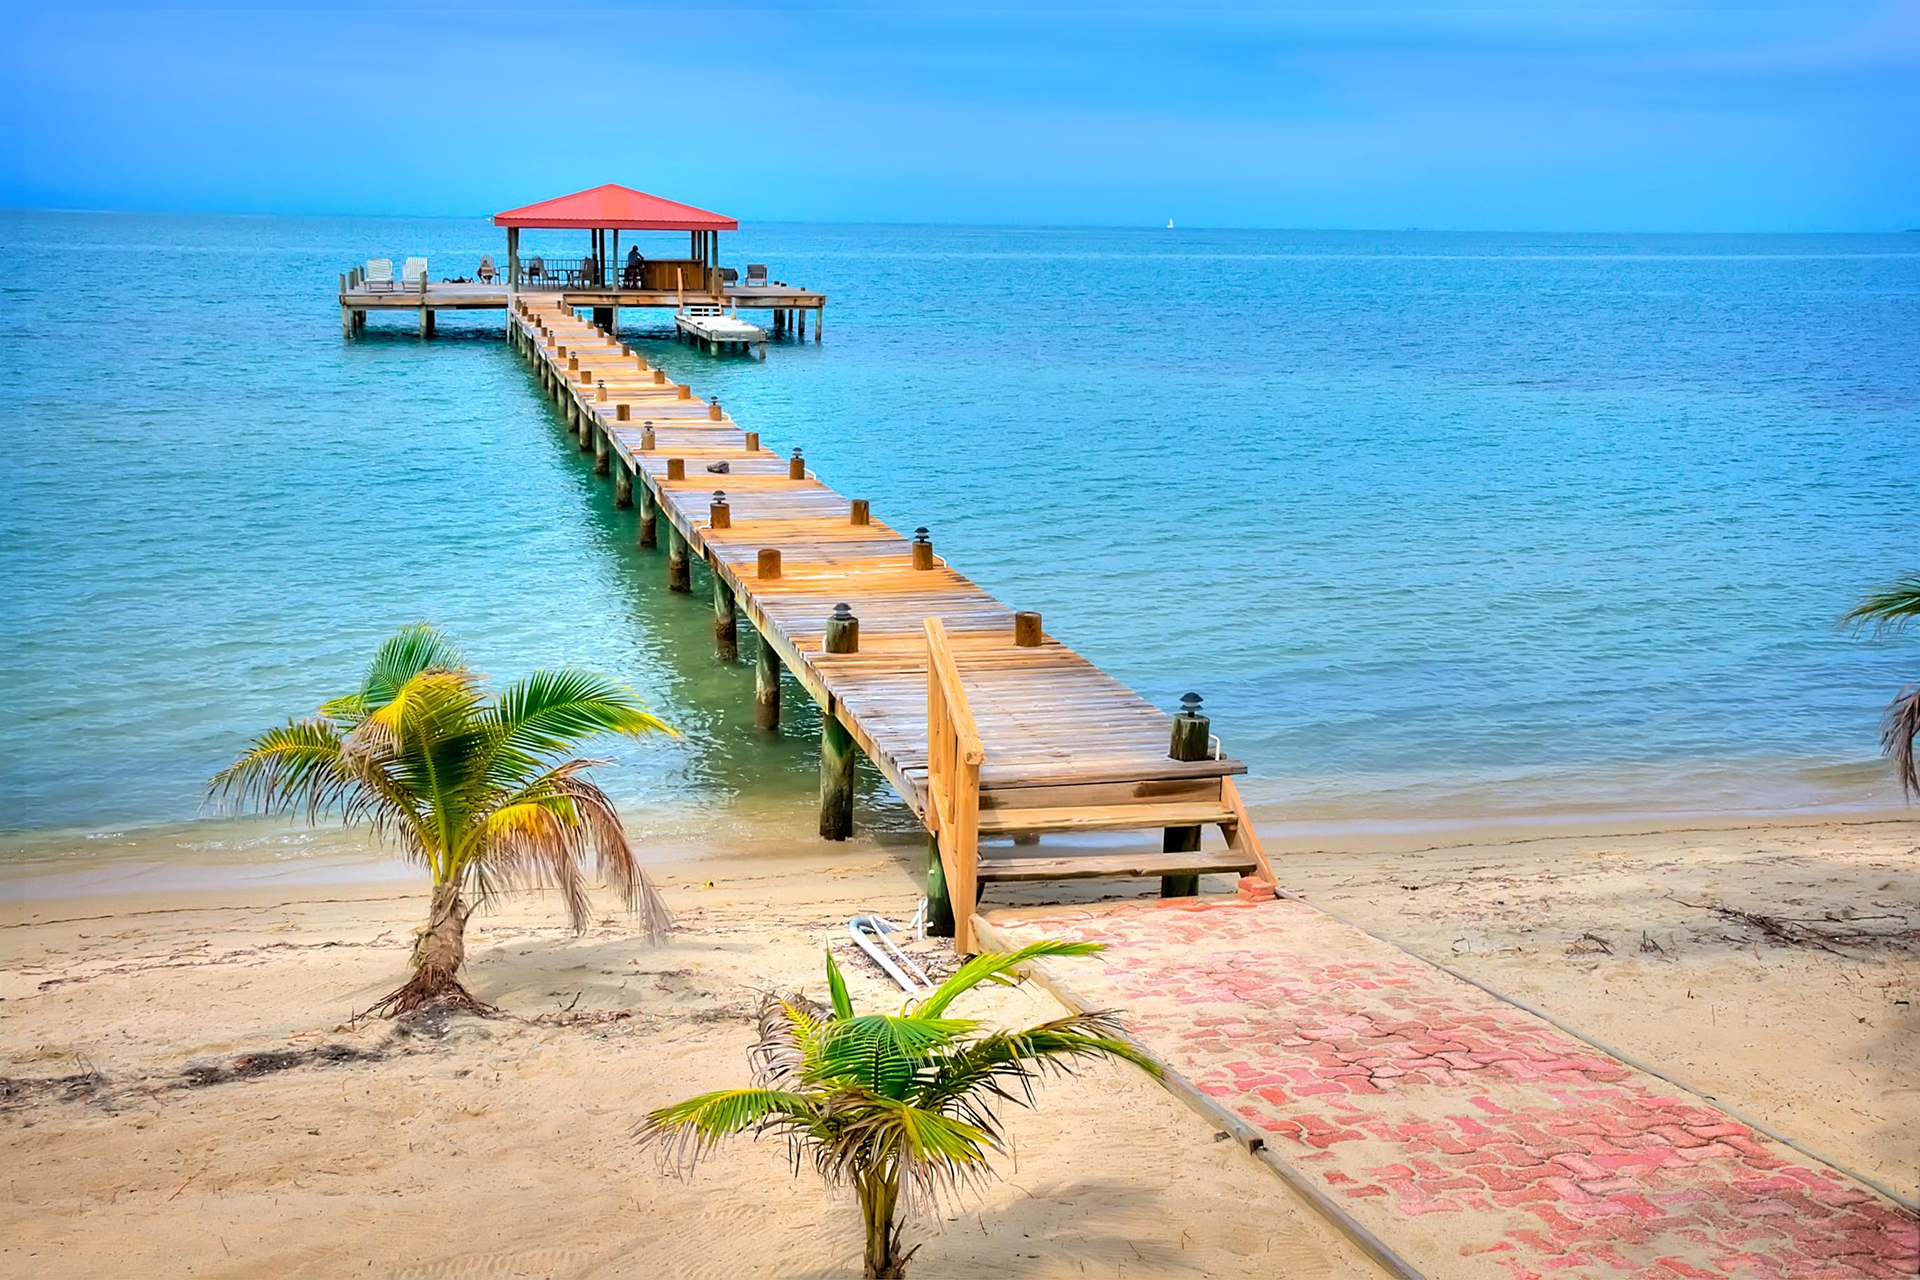 Belize Is Limited In Sprawling Beachfront Properties With All Inclusive Meals And Drinks Provided Rates Instead The Island Begs Families To Enjoy